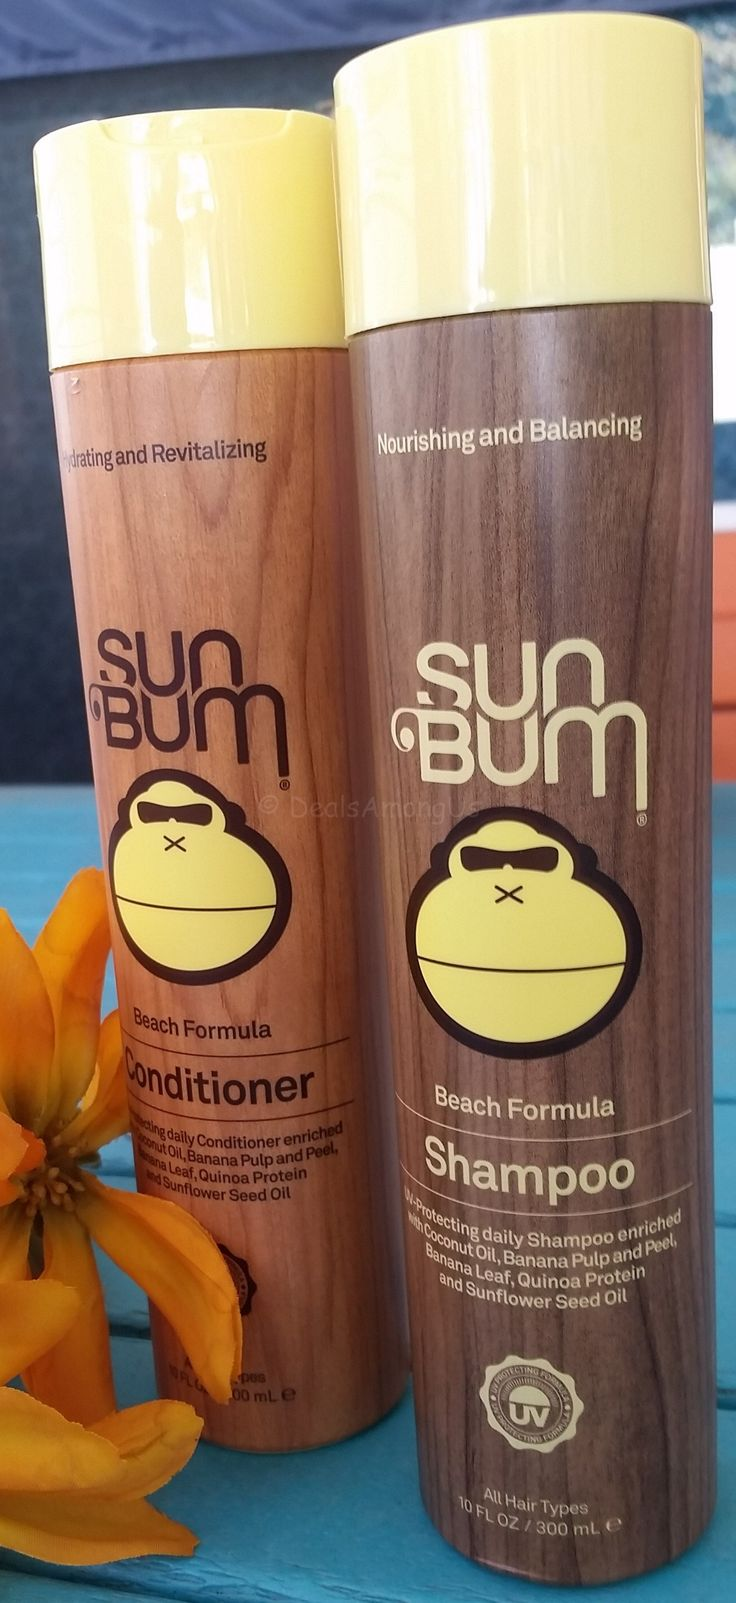 Sun Bum Shampoo and Conditioner Review